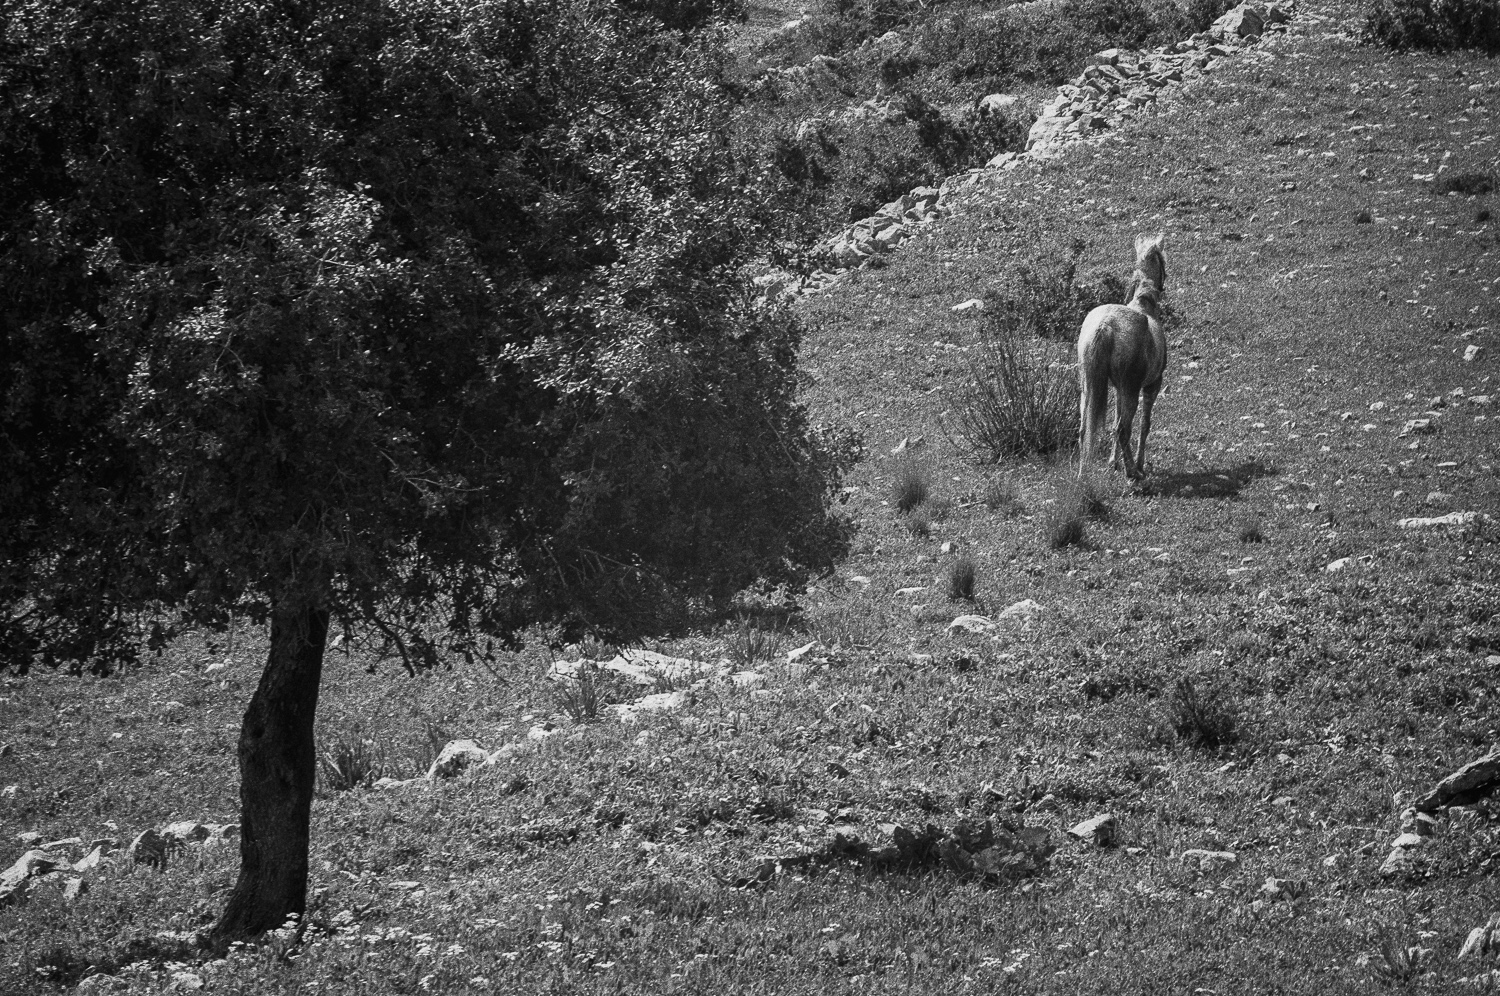 Tree and Horse - Carmel, 1976